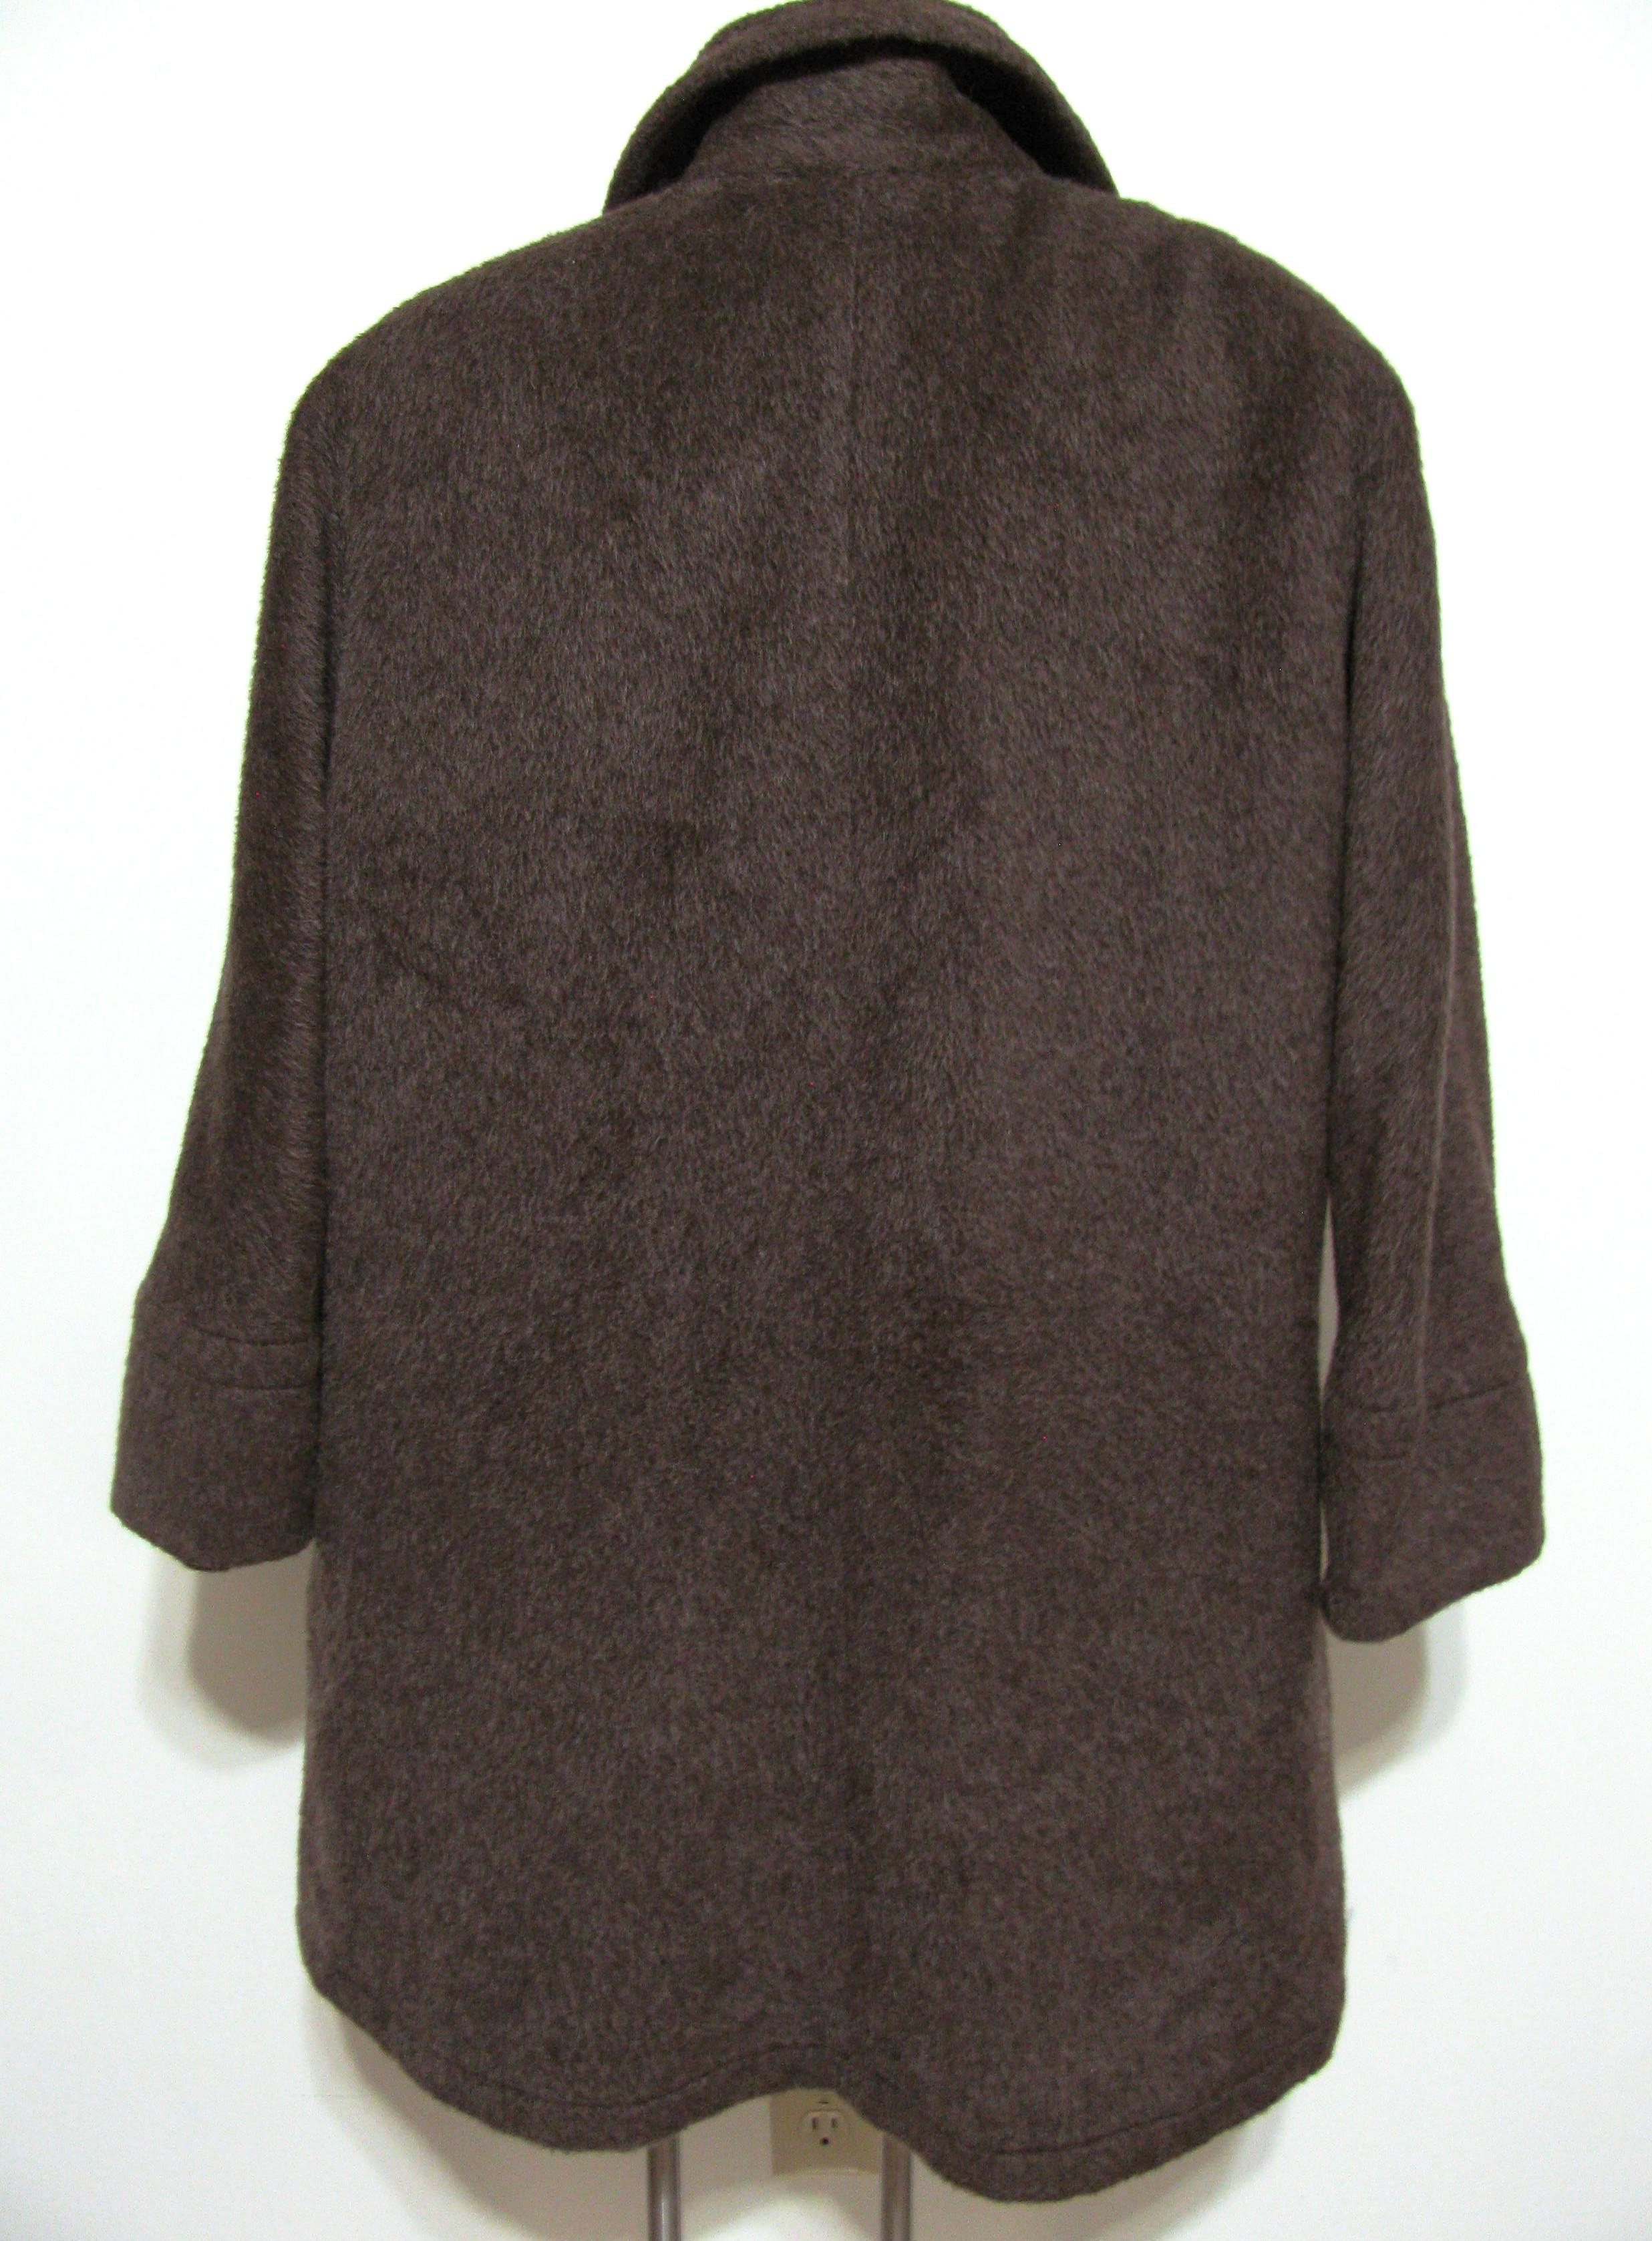 Brown Italy Alpaca Wool Pea Coat Size 10 M Tradesy